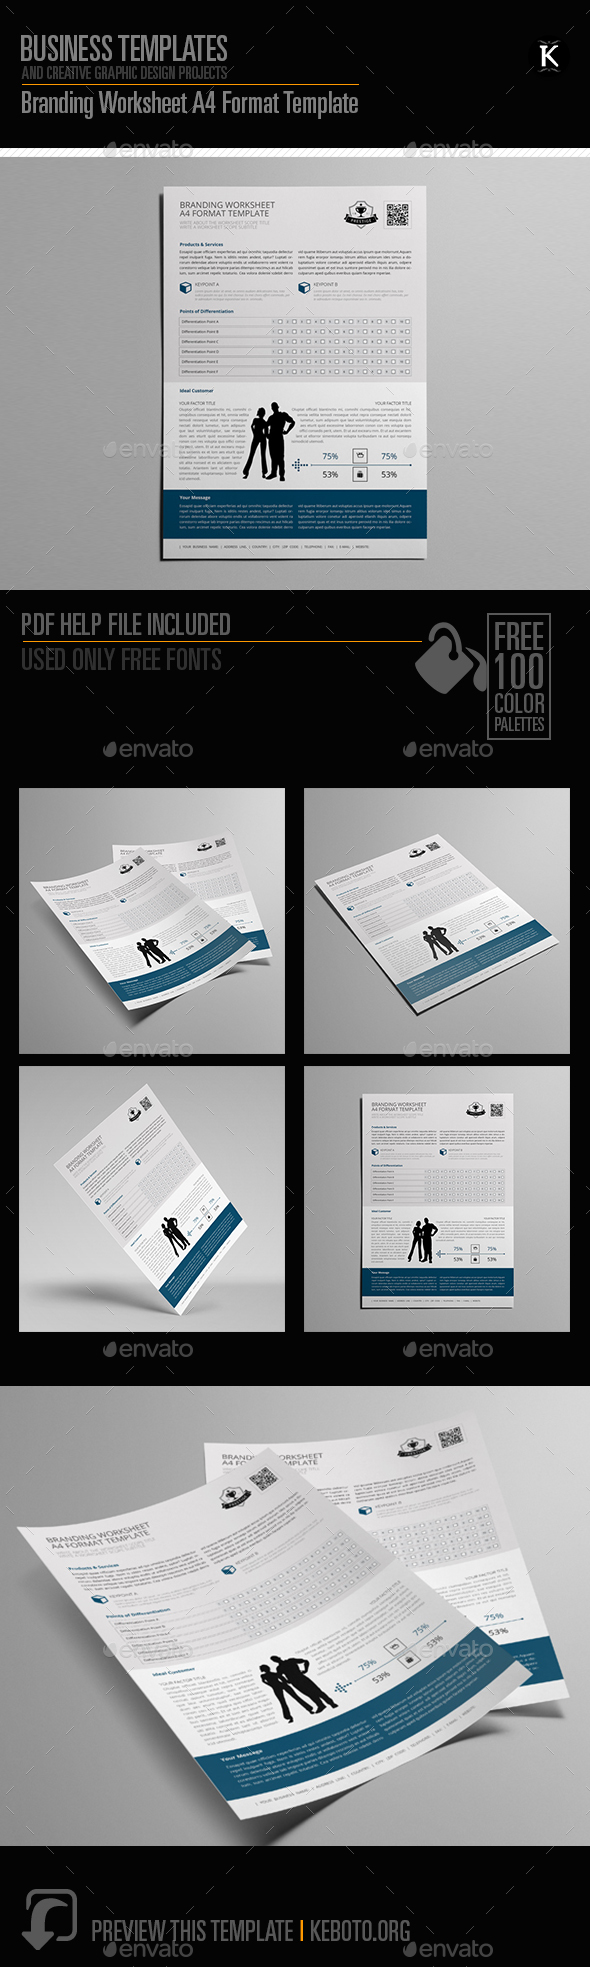 GraphicRiver Branding Worksheet A4 Format Template 20657647